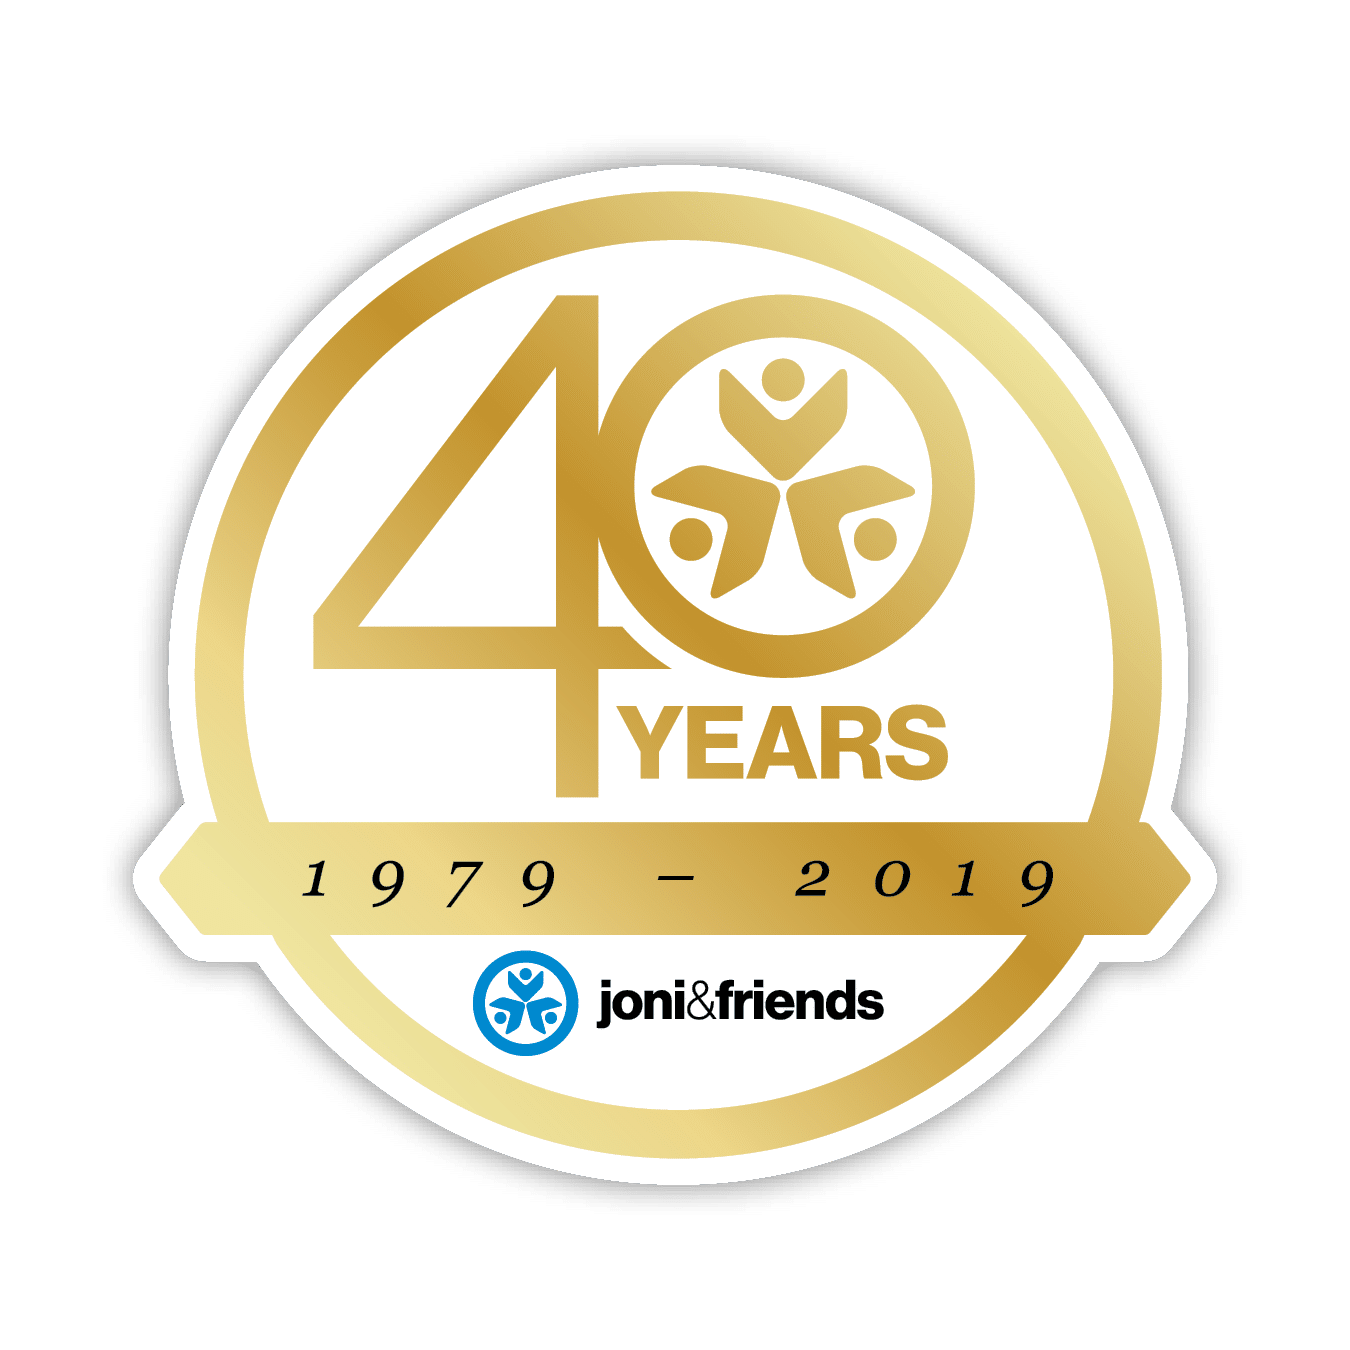 Joni And Friends 40 YEAR LOGO Drop Shadow